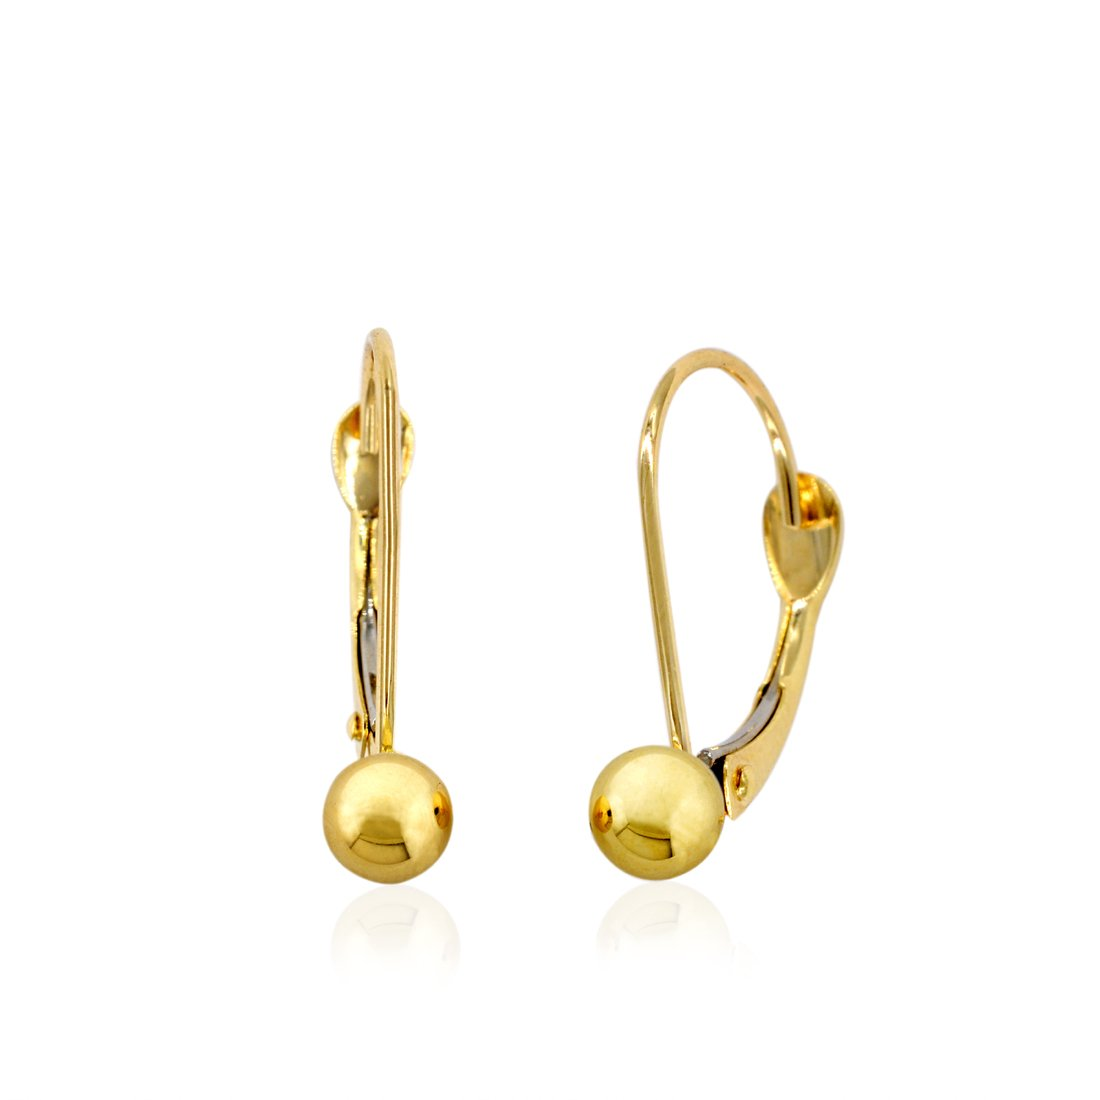 10k Yellow Gold 4mm Small Fixed Ball Leverback Earrings